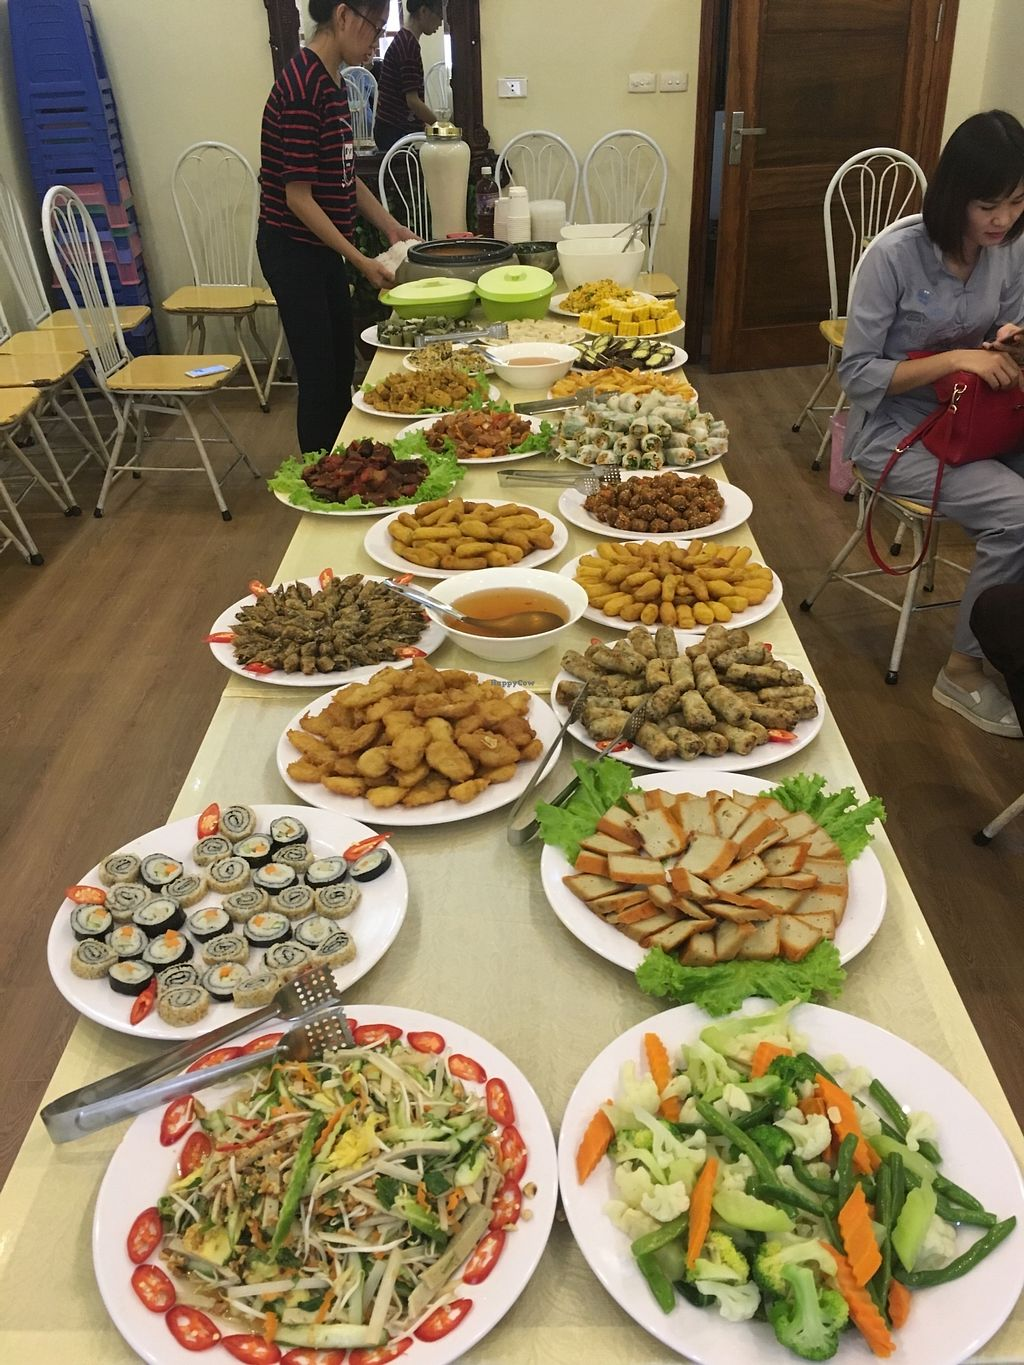 """Photo of Loving Hut - Hoa Binh  by <a href=""""/members/profile/Laura199x"""">Laura199x</a> <br/>buffet <br/> July 8, 2017  - <a href='/contact/abuse/image/95604/277824'>Report</a>"""